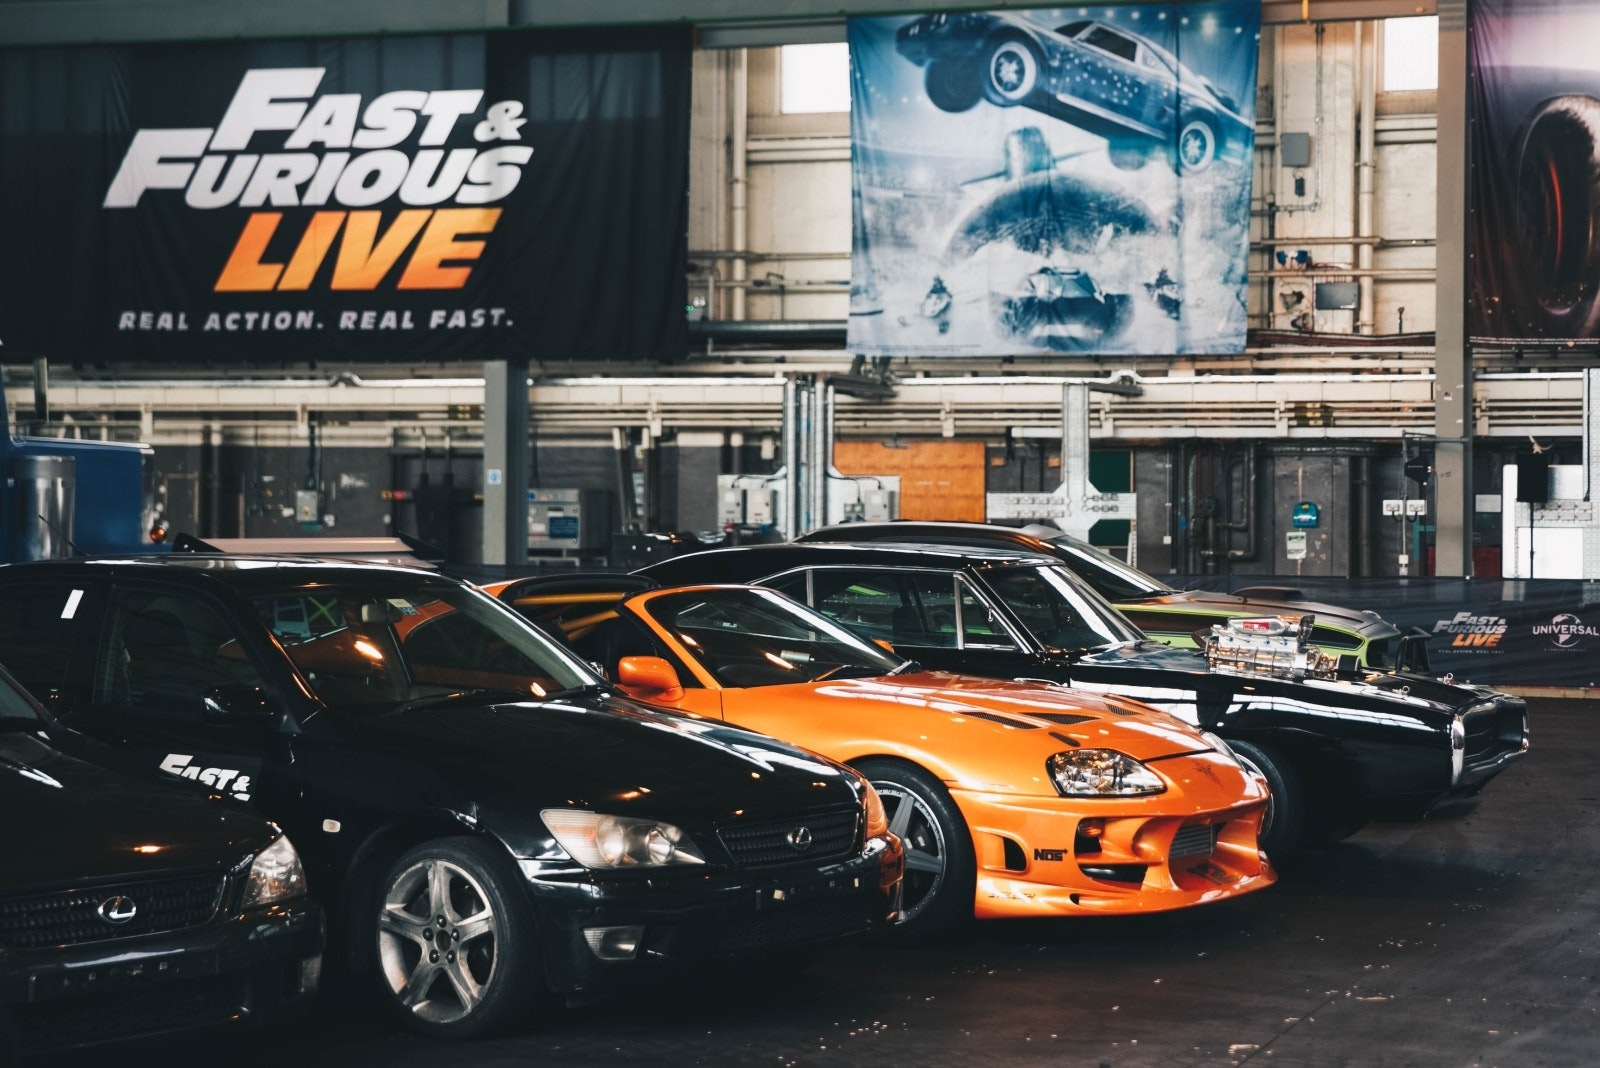 Here's what you need to know about the new Fast & Furious live show